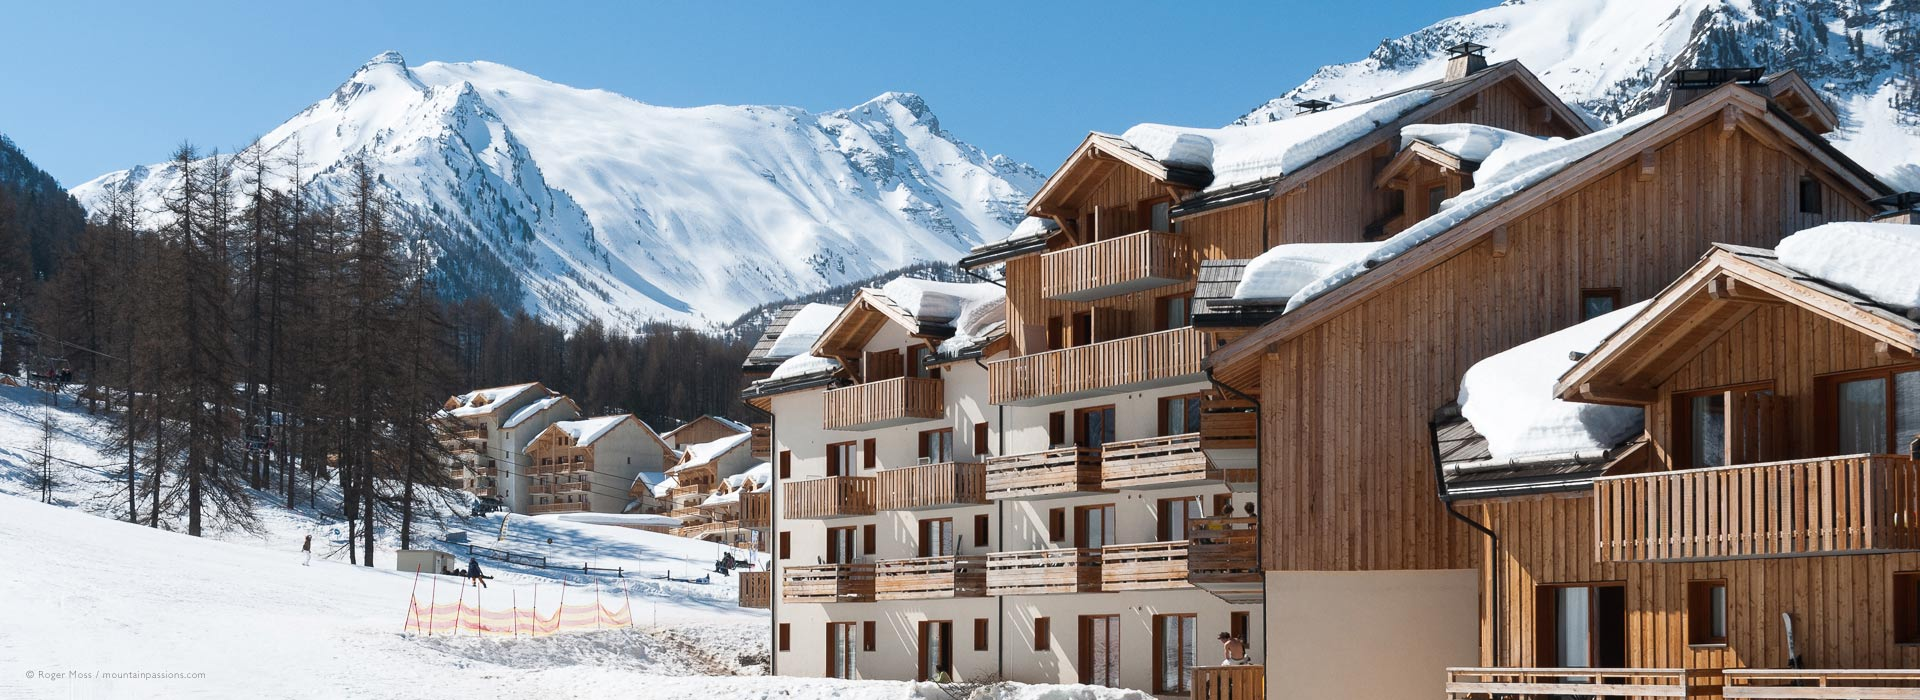 View of ski apartments with snow-covered roofs and mountain background at Les Orres